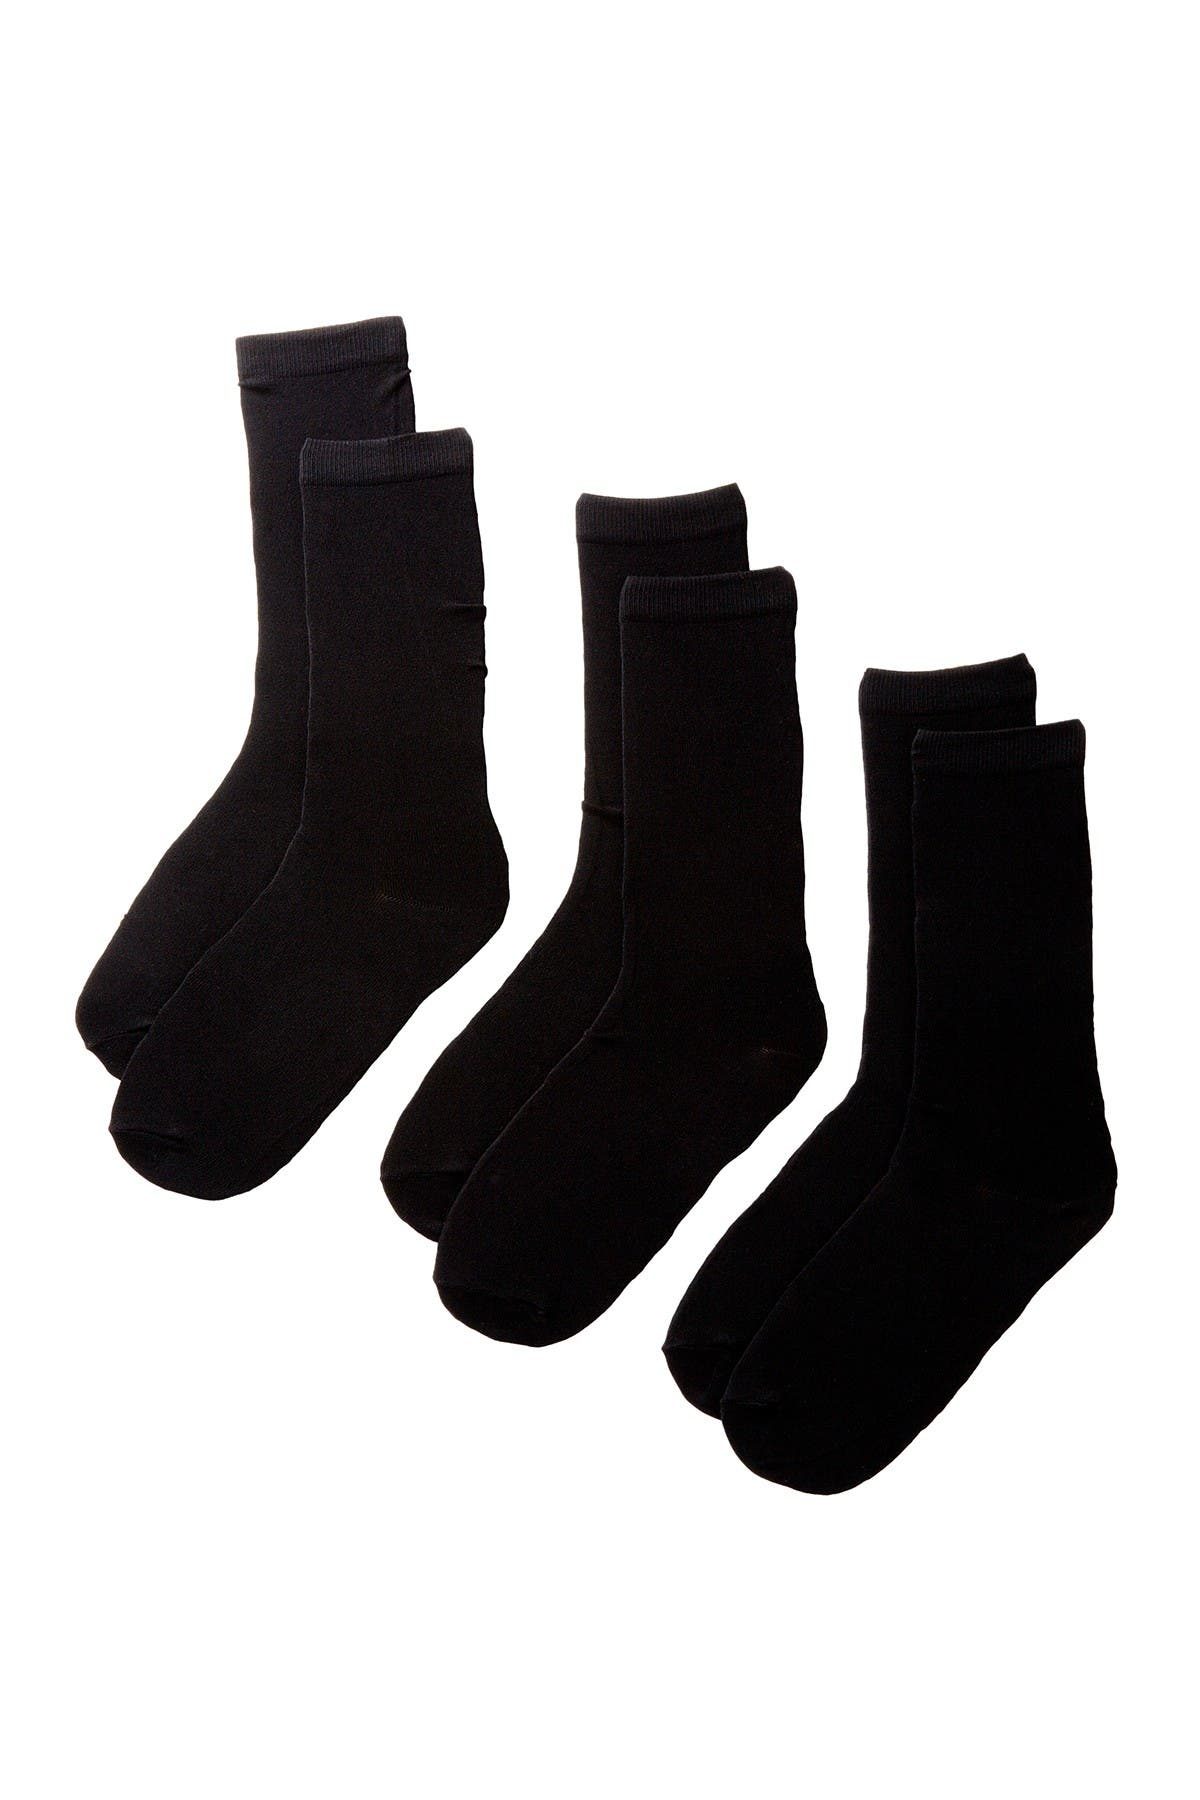 HUE Sleek Socks - Pack of 3 at Nordstrom Rack